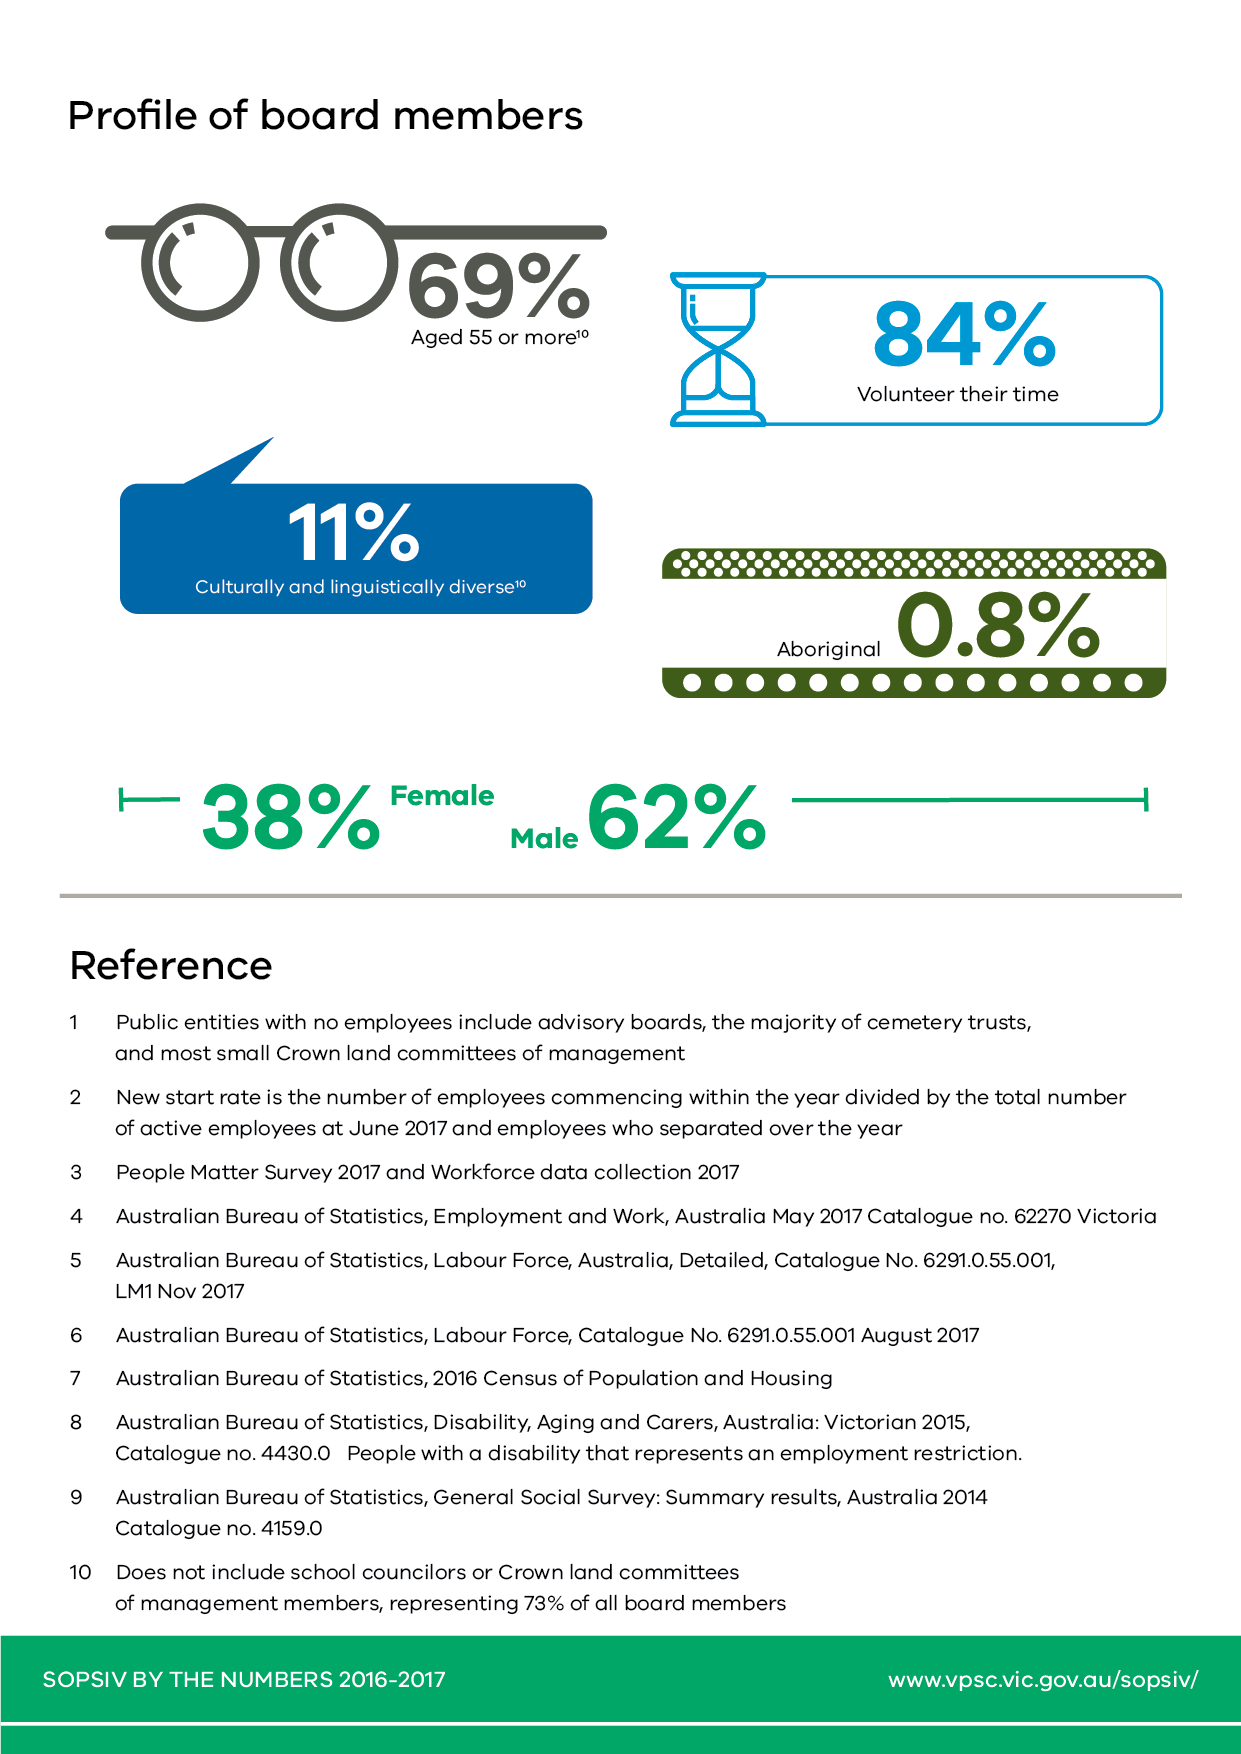 Page 5 of 5 pages of infographic representations of the statistical highlights from the State of the Public Sector in Victoria 2016-2017 report.